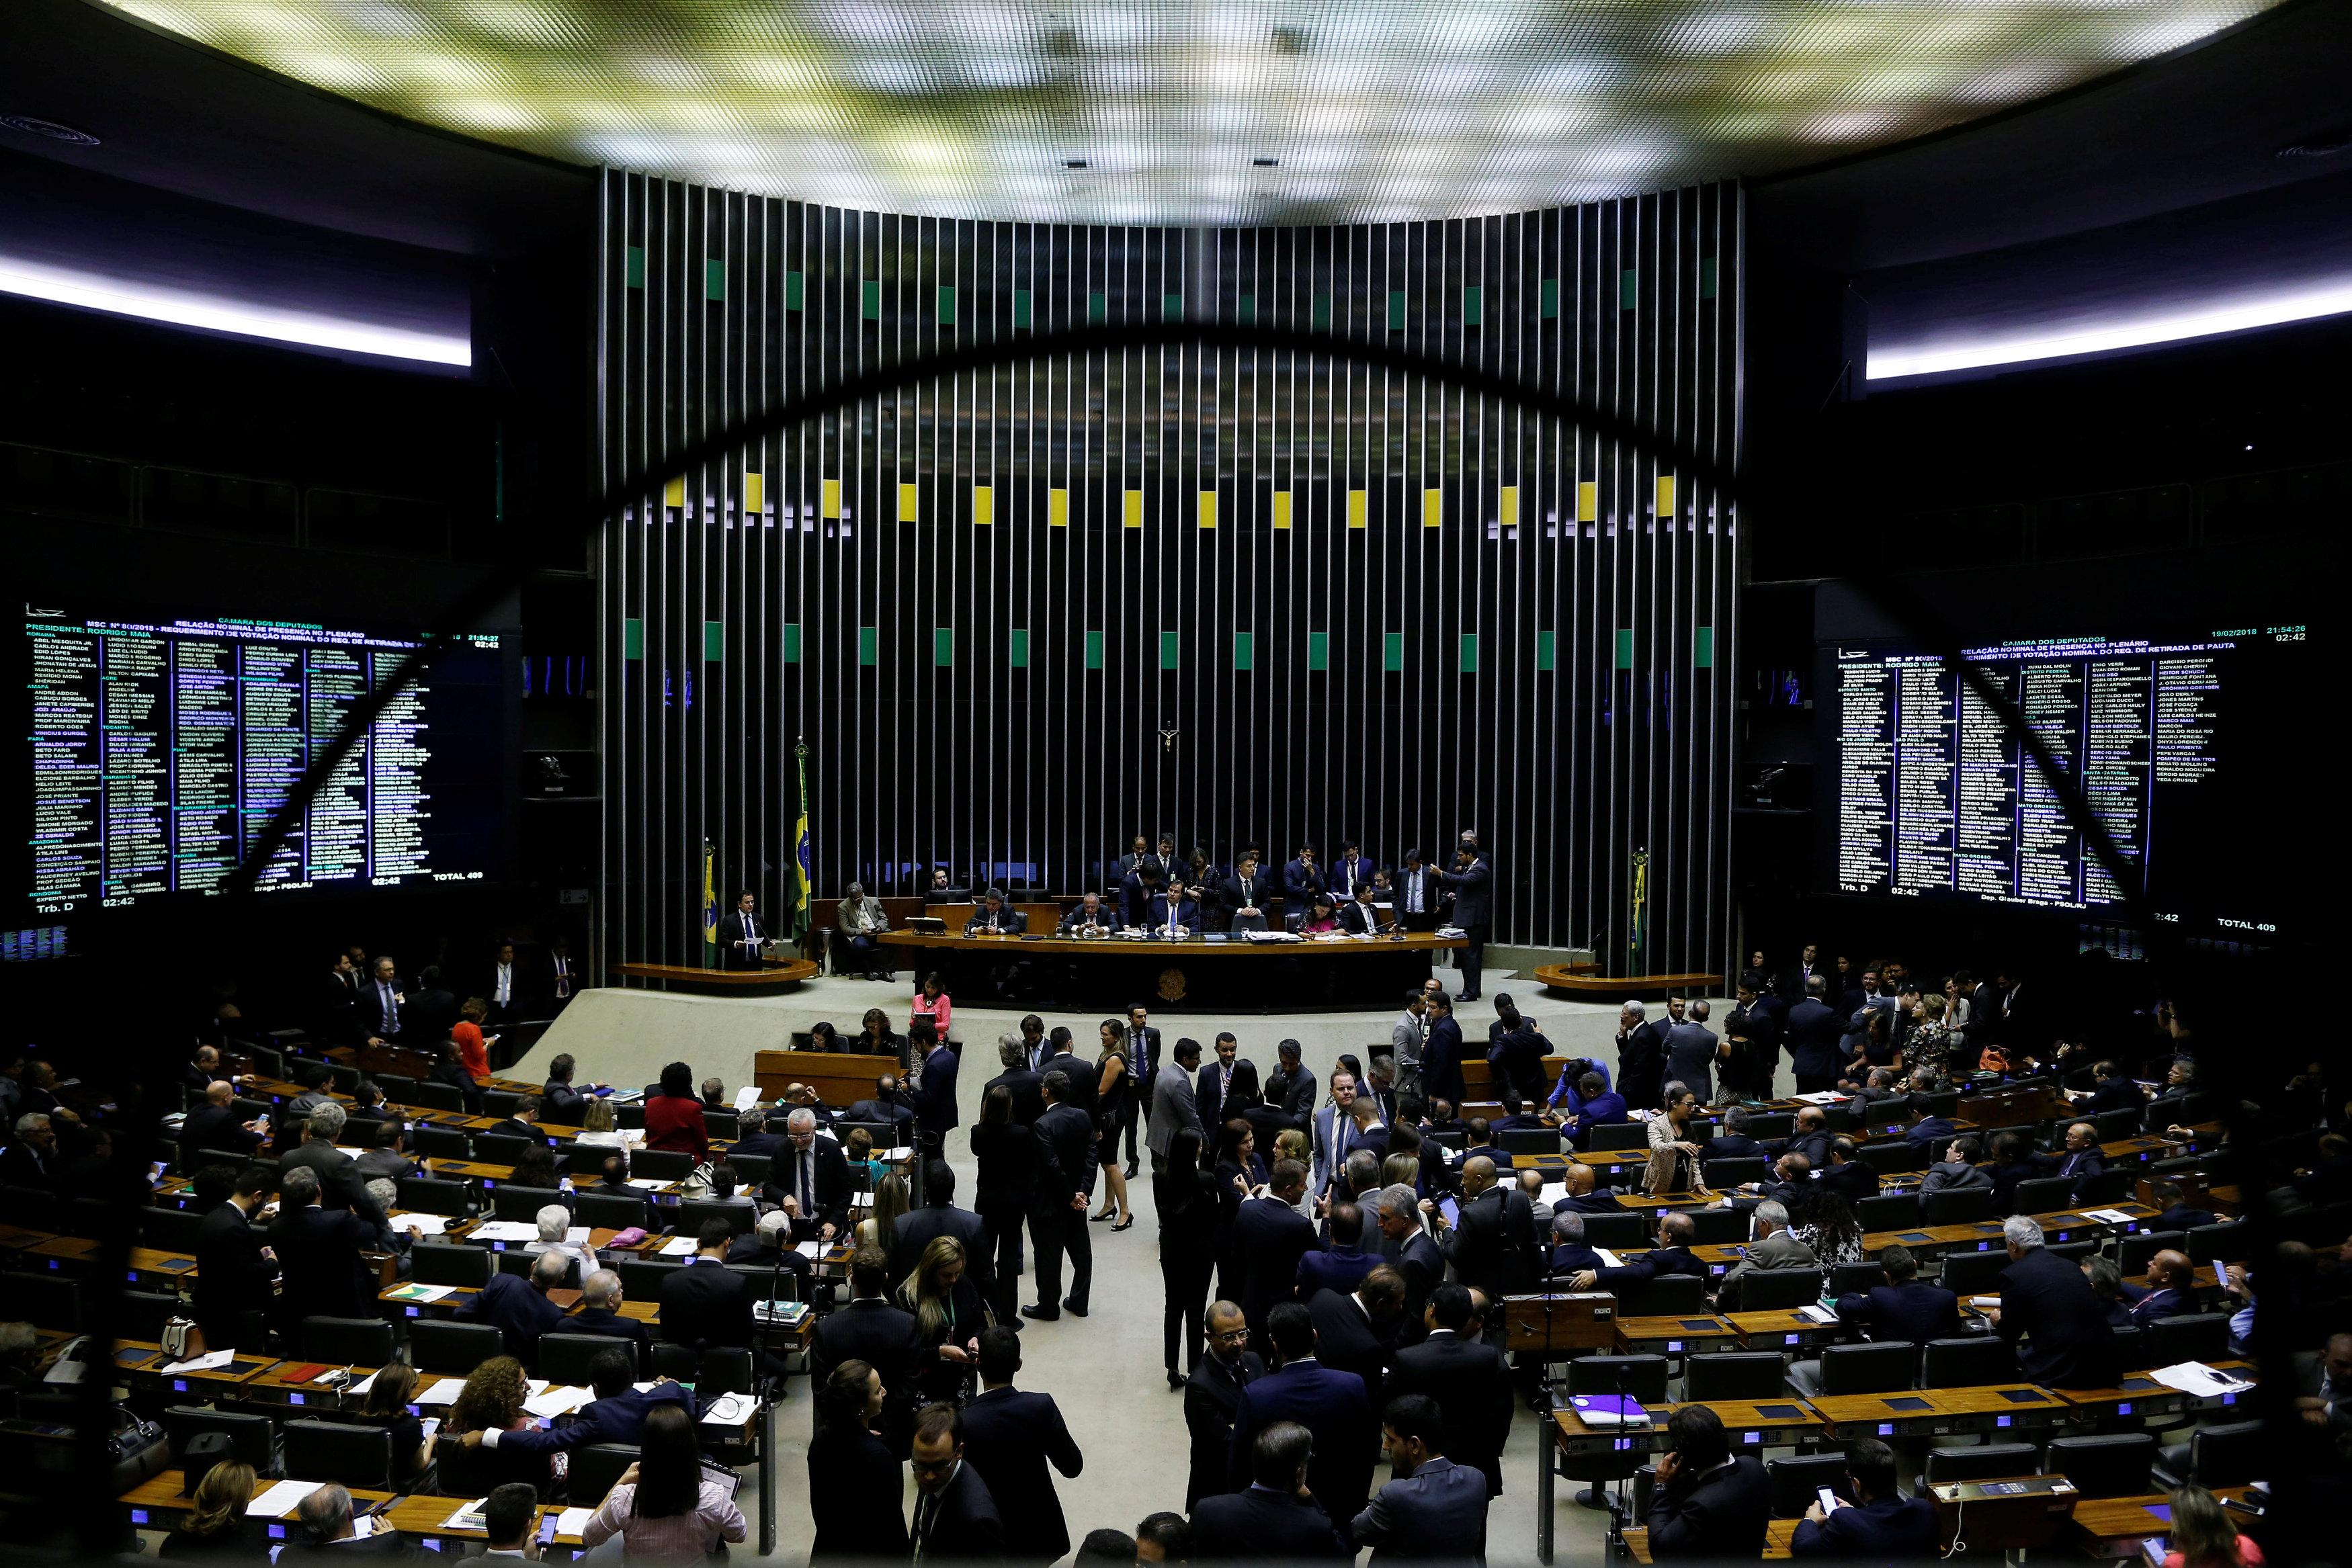 Members of the lower chamber of Brazil's Congress attend a session to vote on the decree of the army to take over command of police forces in Rio de Janeiro state, at Brazilian national Congress in Brasilia, Brazil February 19, 2018. Adriano Machado